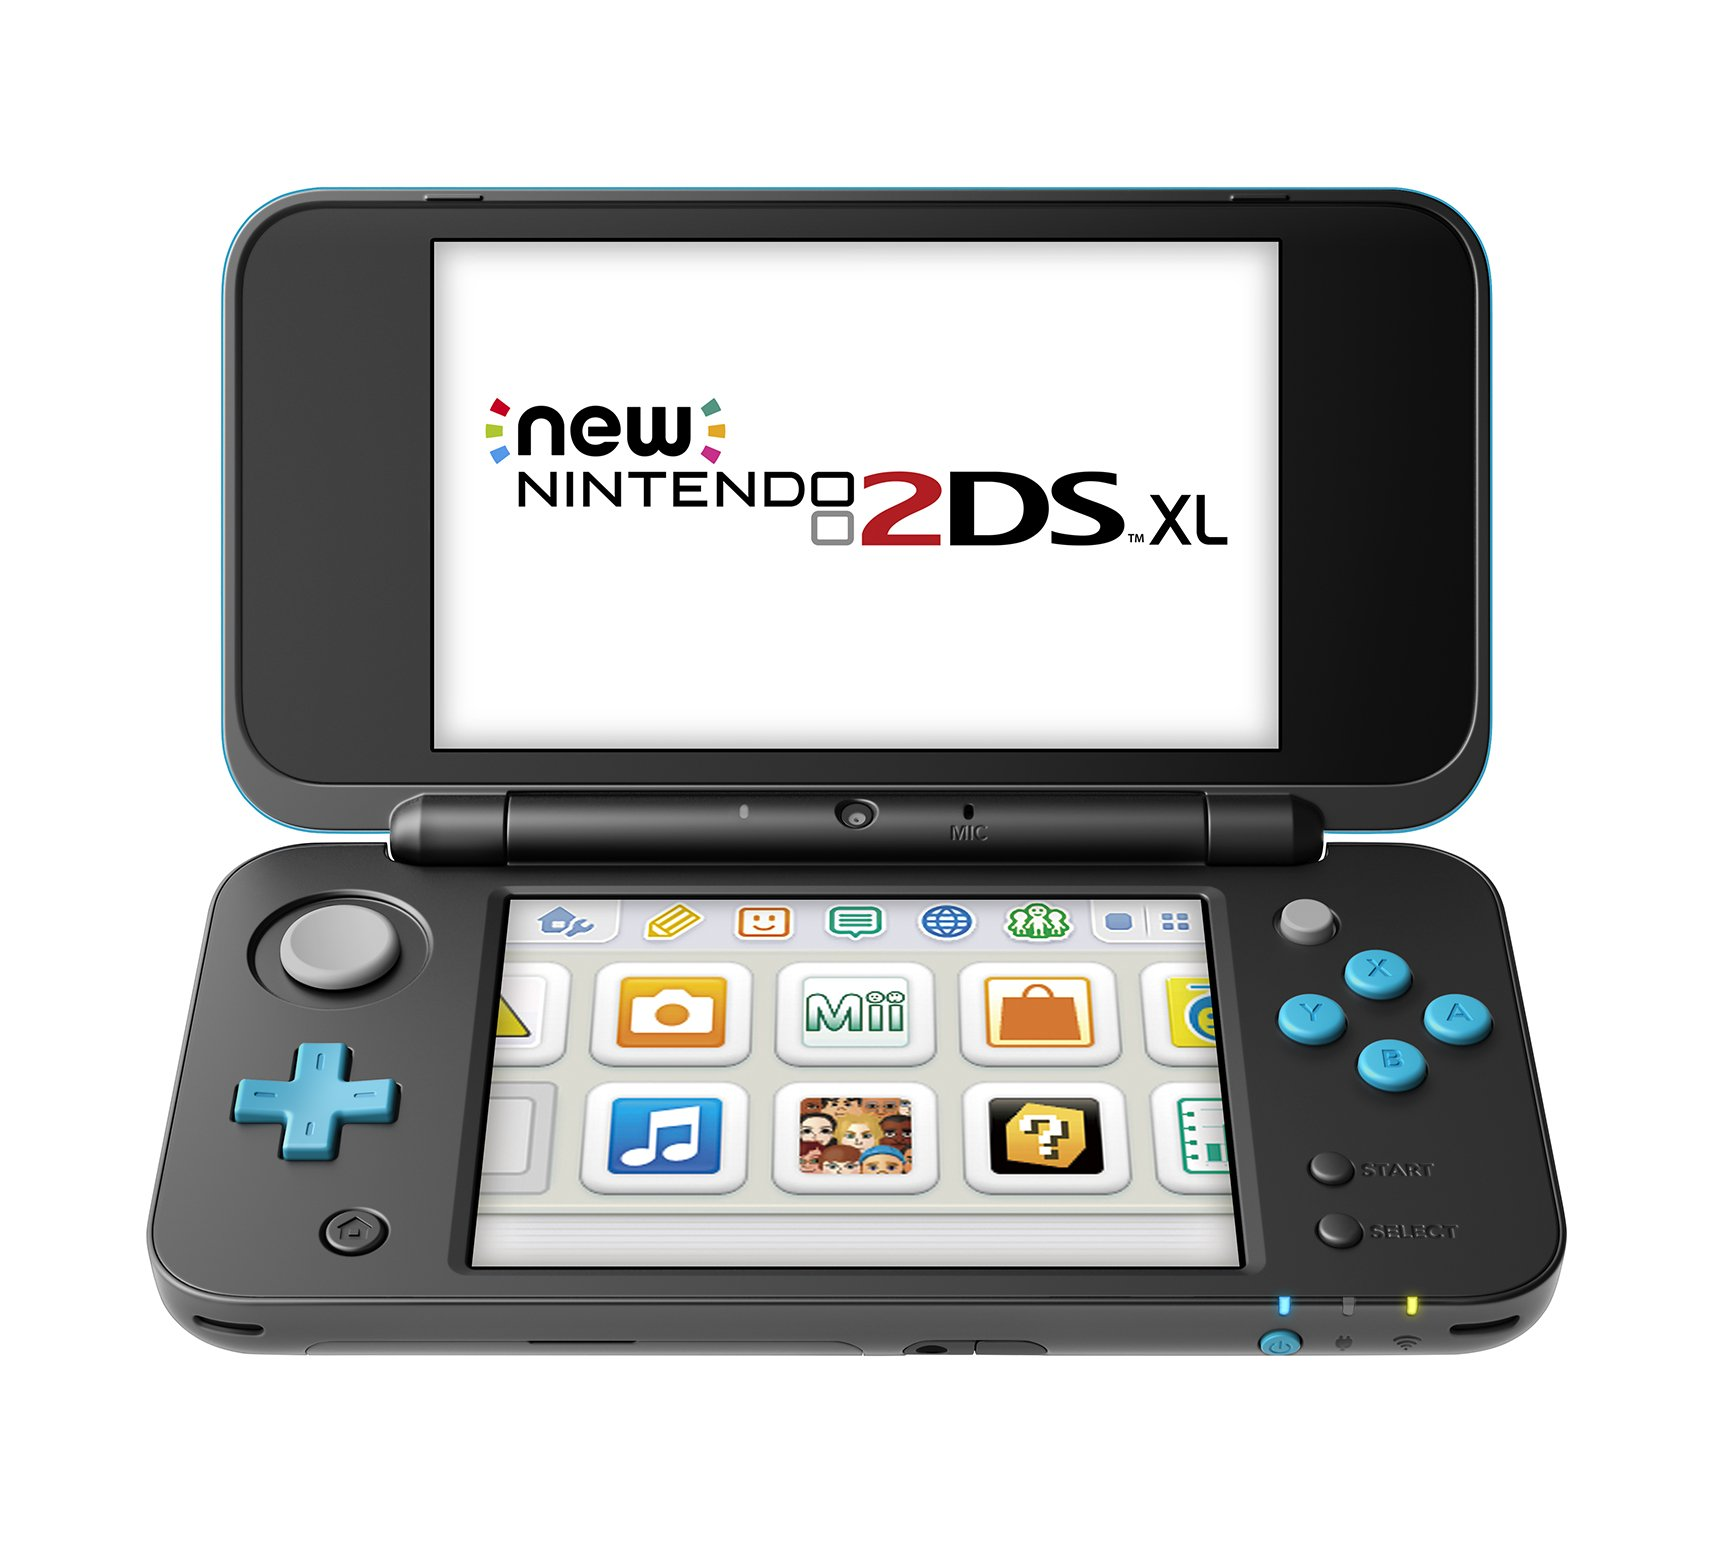 New Nintendo 2DS XL - Black + Turquoise With Mario Kart 7 Pre-installed - Nintendo 2DS by Nintendo (Image #2)